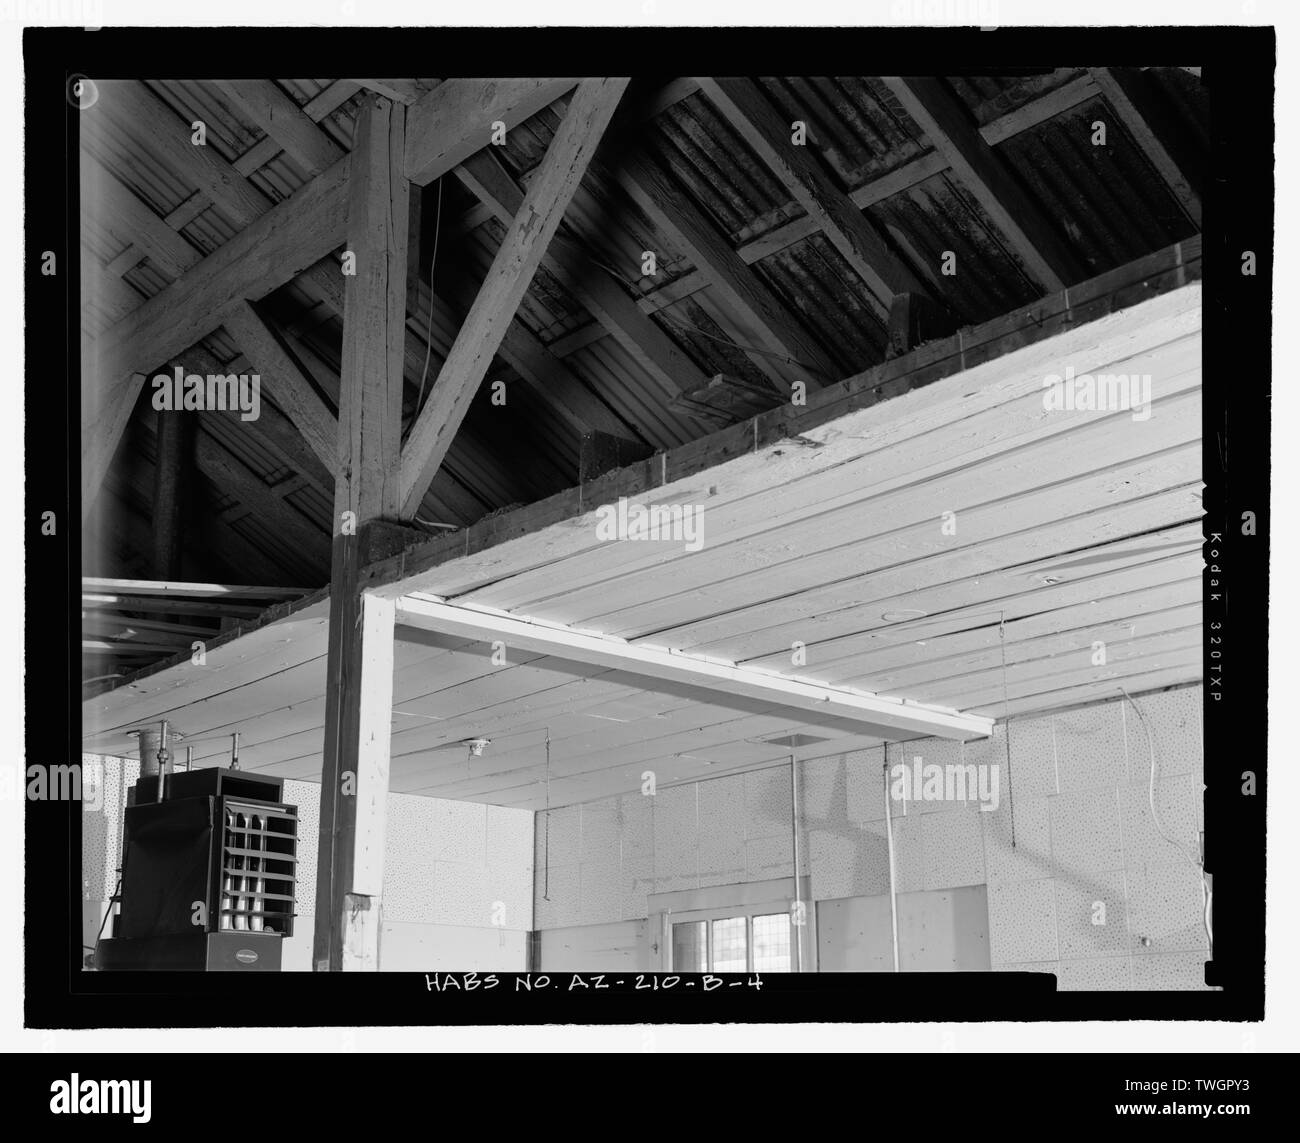 ROOF FRAMING AND BOARD-AND-BATTEN CEILING FROM CENTER AISLE LOOKING NORTHWEST - Fort Huachuca, Cavalry Stable, Clarkson Road, Sierra Vista, Cochise County, AZ - Stock Image